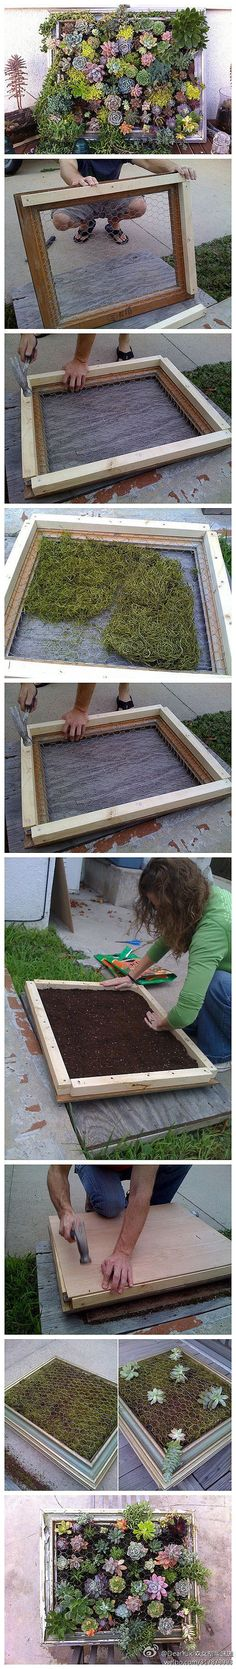 OP wrote: picture frame succulent planter {vertical planters for salad greens & herbs, too}